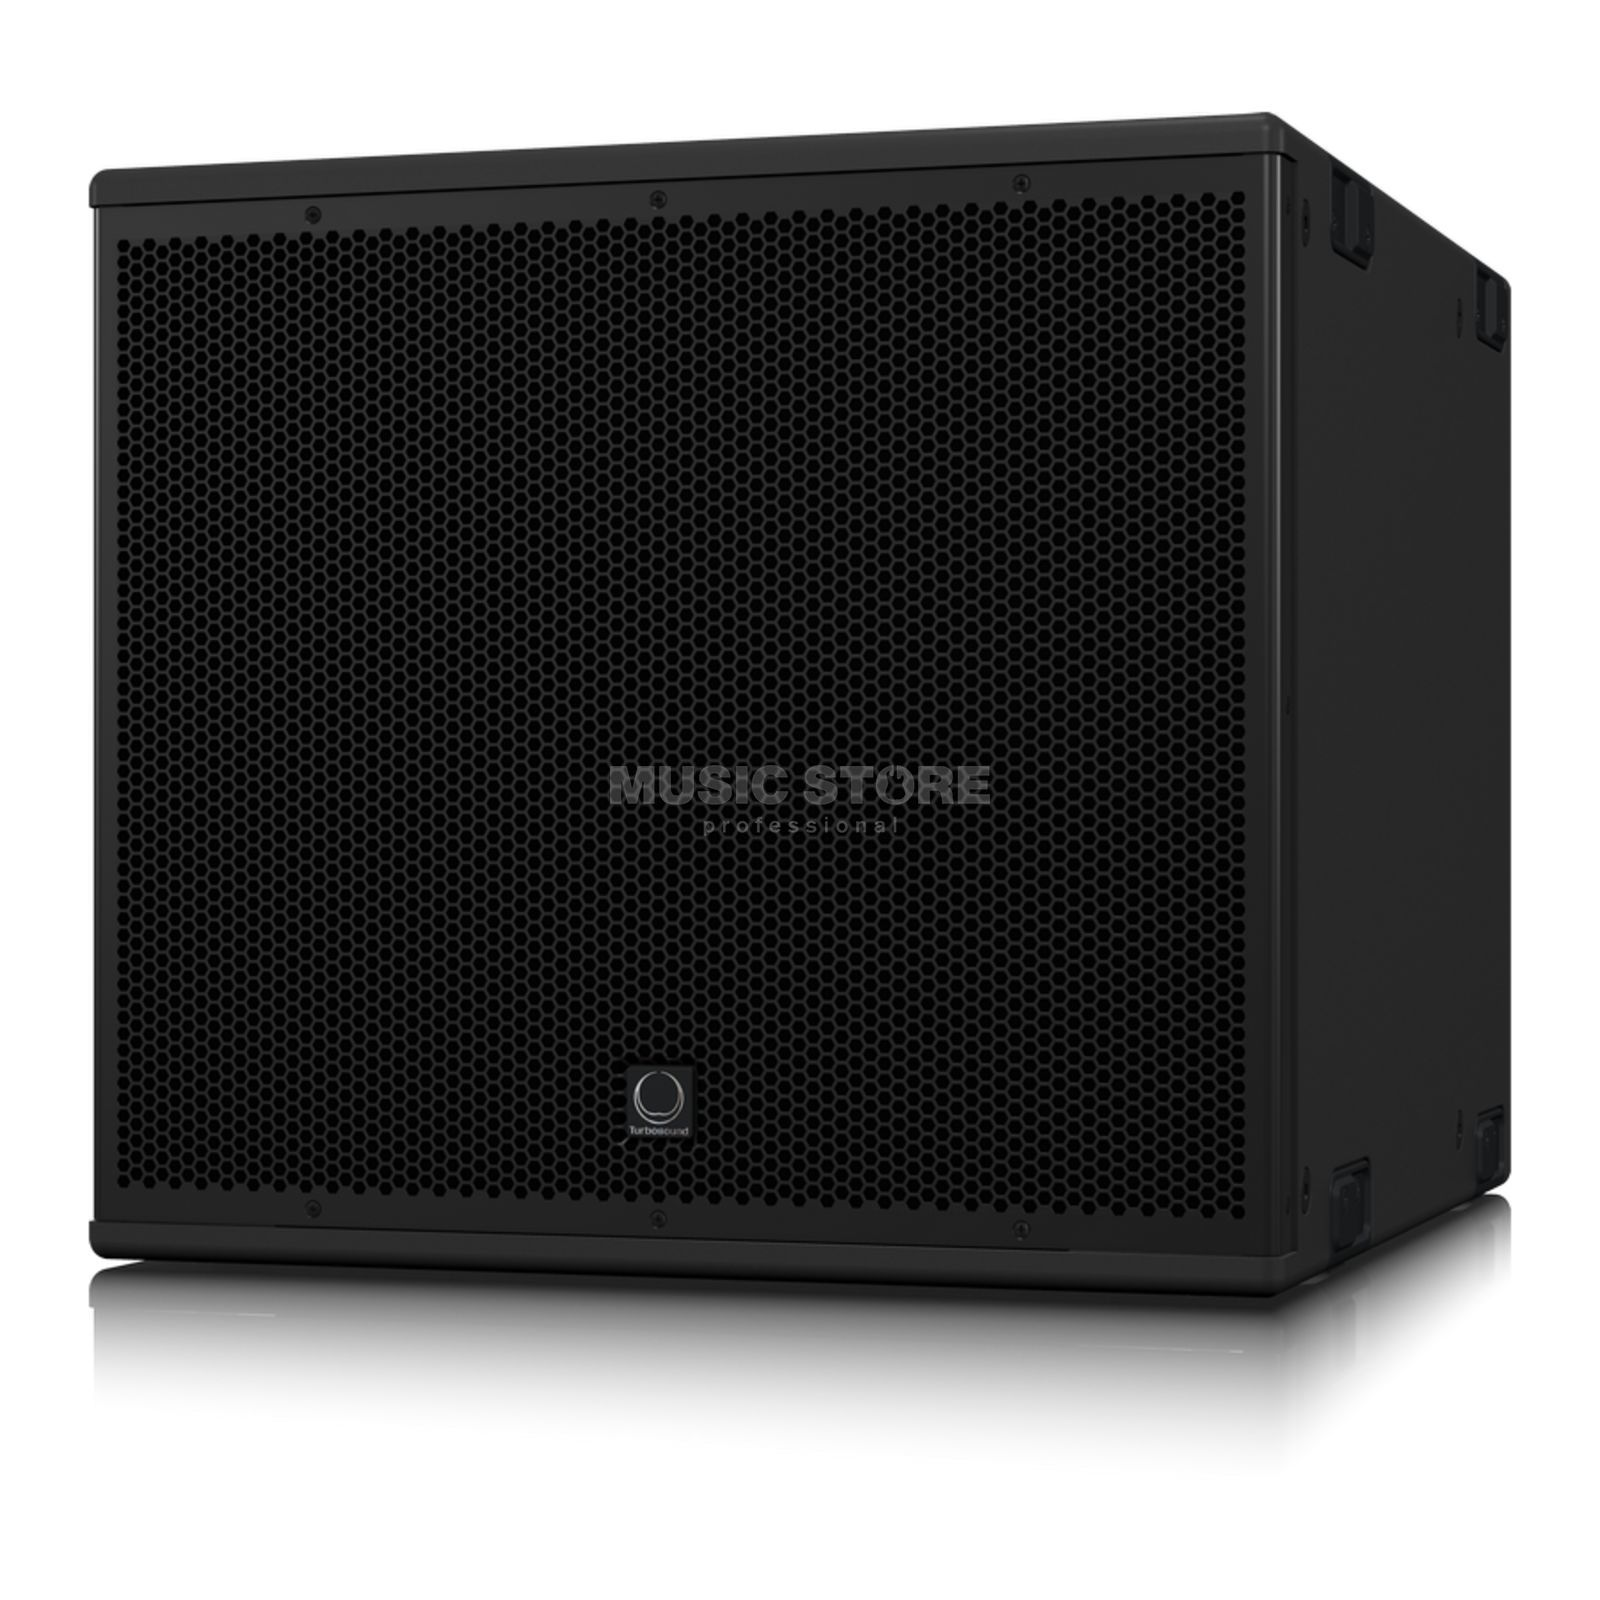 Turbosound NUQ115B-AN Product Image